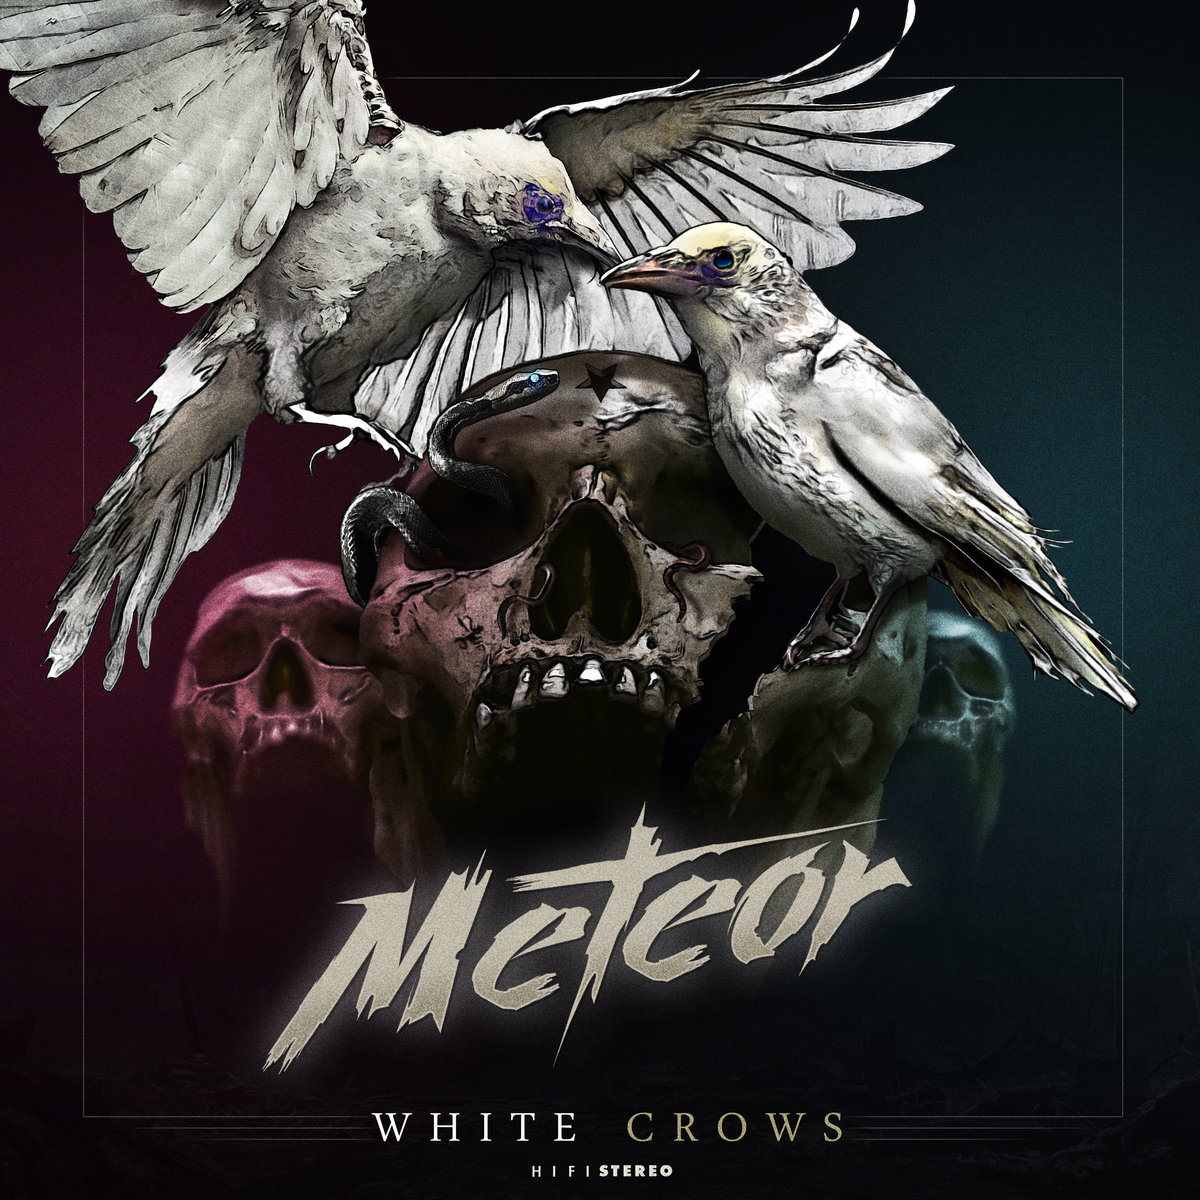 a1272288082 10 - Meteor - White Crows Review